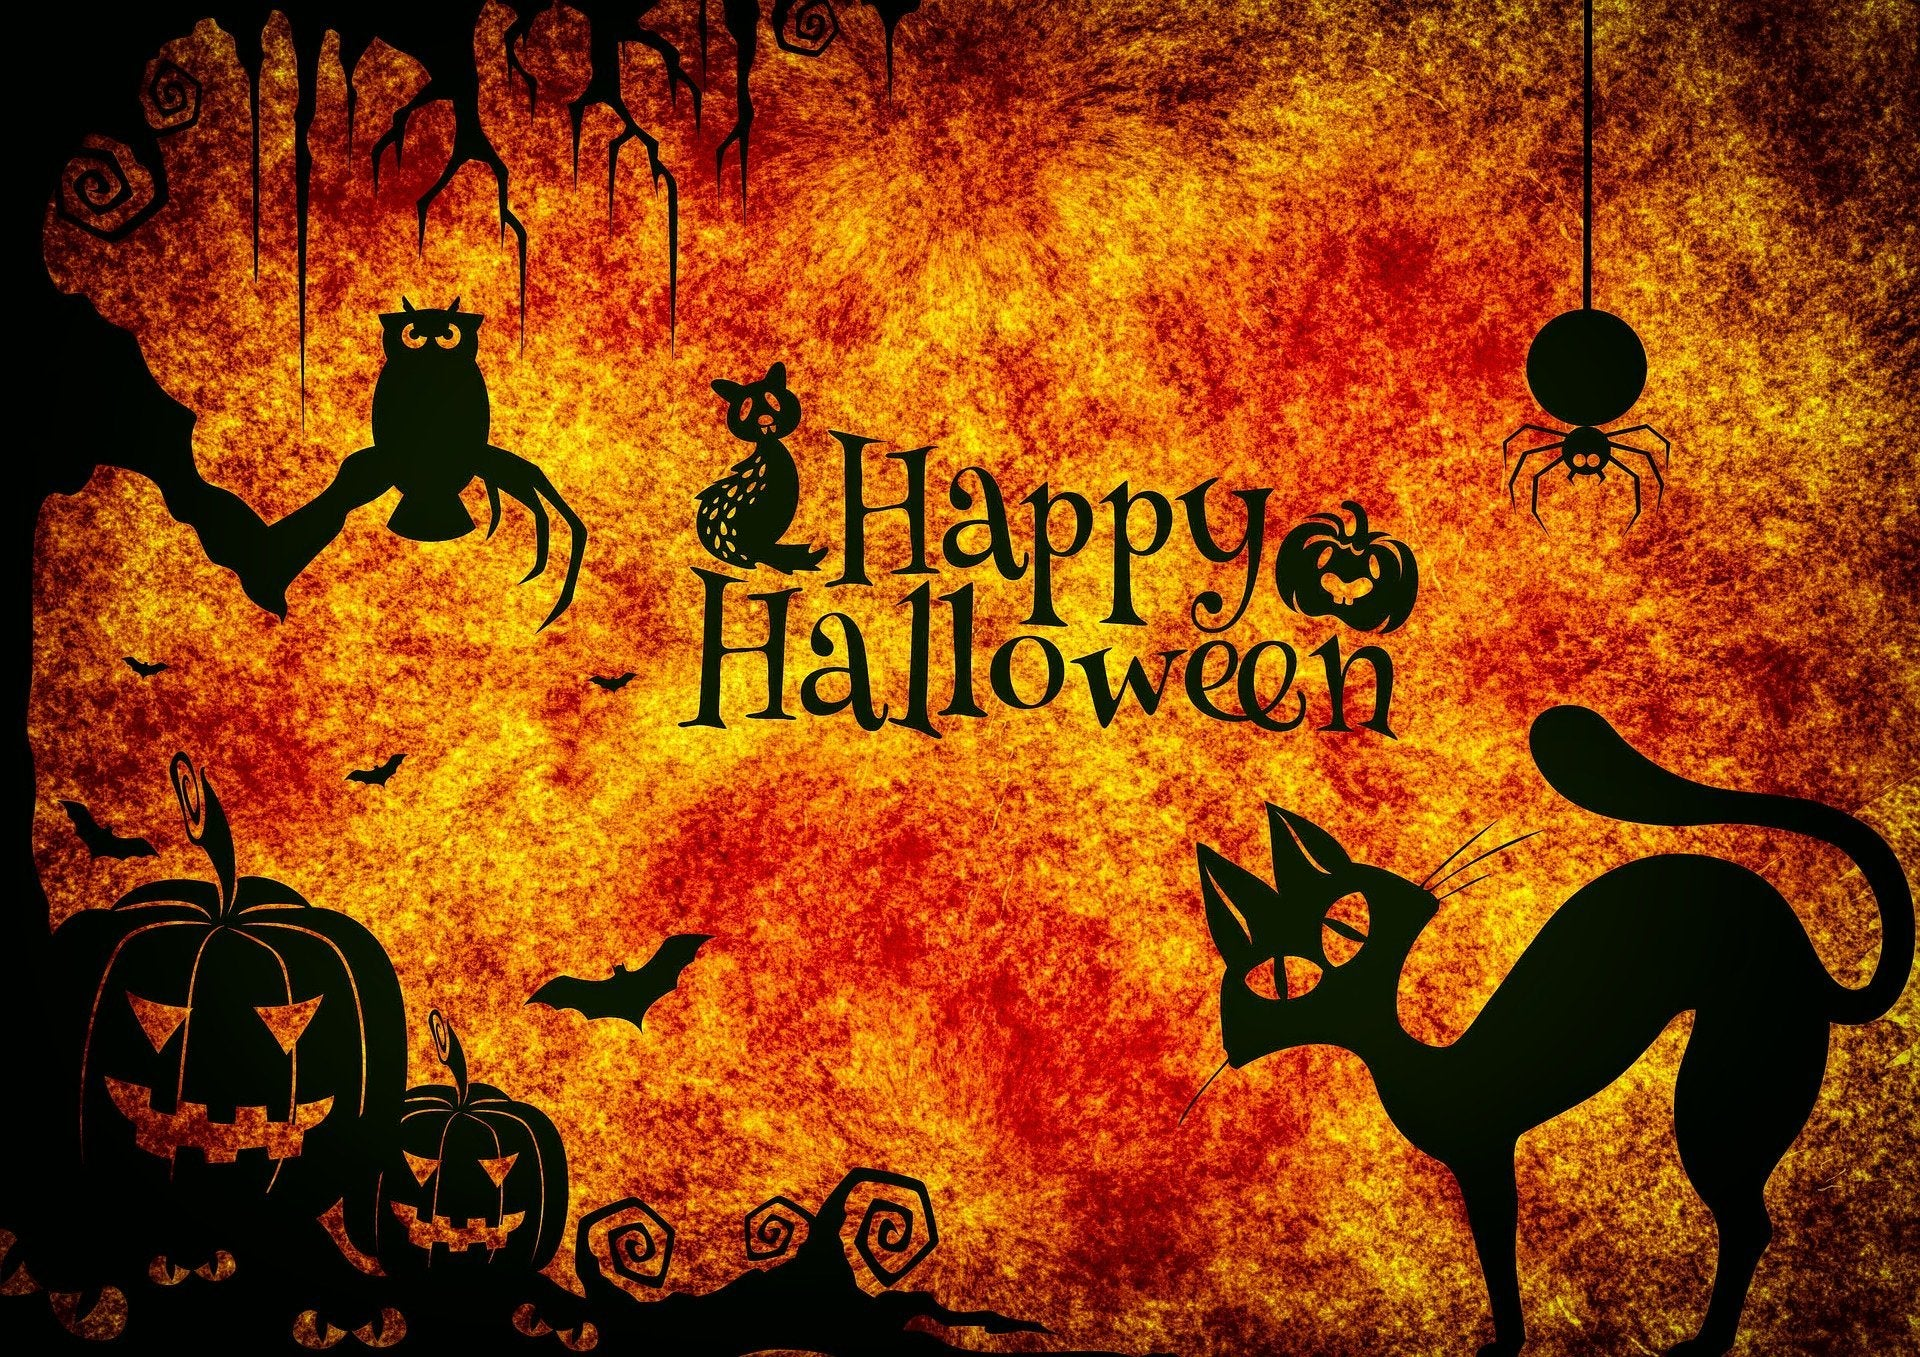 Happy Halloween Shadows Diamond Painting Kit - The Diamond Painting Factory